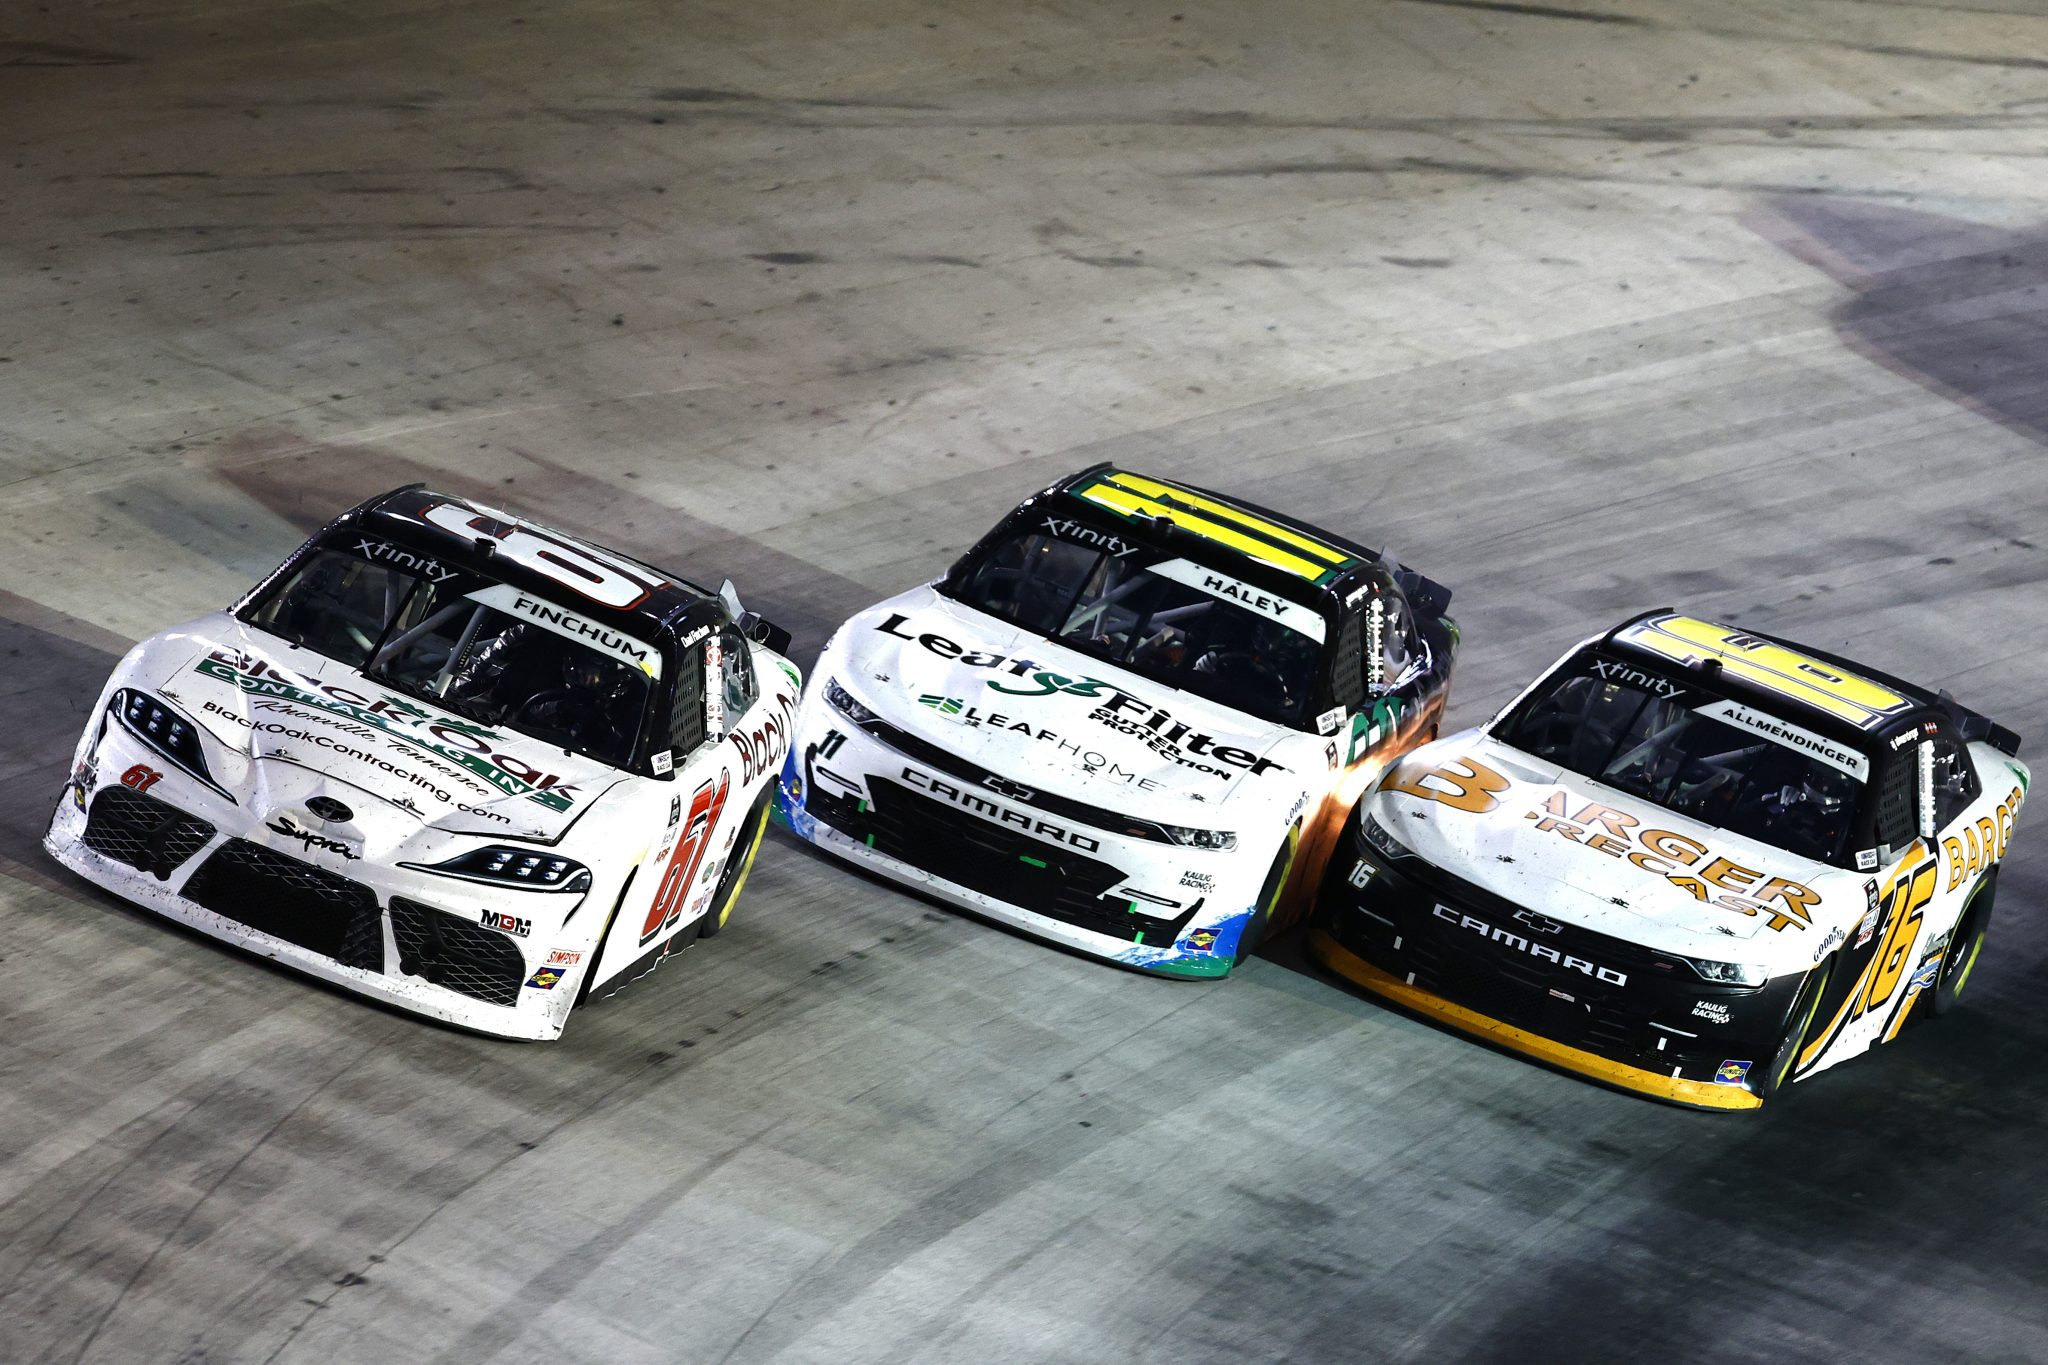 BRISTOL, TENNESSEE - SEPTEMBER 17: Chad Finchum, driver of the #61 Black Oak Contracting Toyota, Justin Haley, driver of the #11 LeafFilter Gutter Protection Chevrolet, and AJ Allmendinger, driver of the #16 Barger Precast Chevrolet, race during the NASCAR Xfinity Series Food City 300 at Bristol Motor Speedway on September 17, 2021 in Bristol, Tennessee. (Photo by Jared C. Tilton/Getty Images) | Getty Images